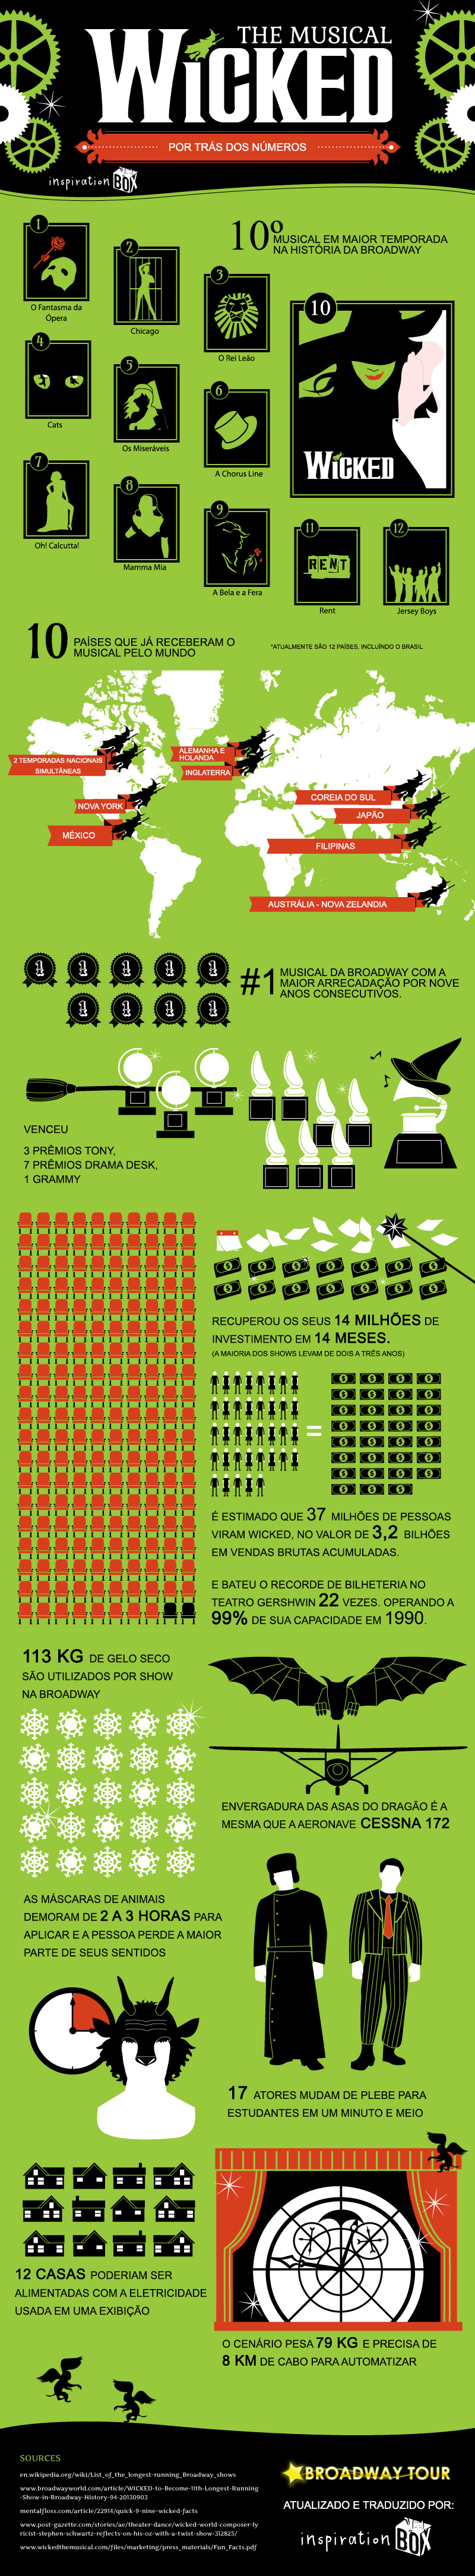 wicked-by-the-numbers-infographic1